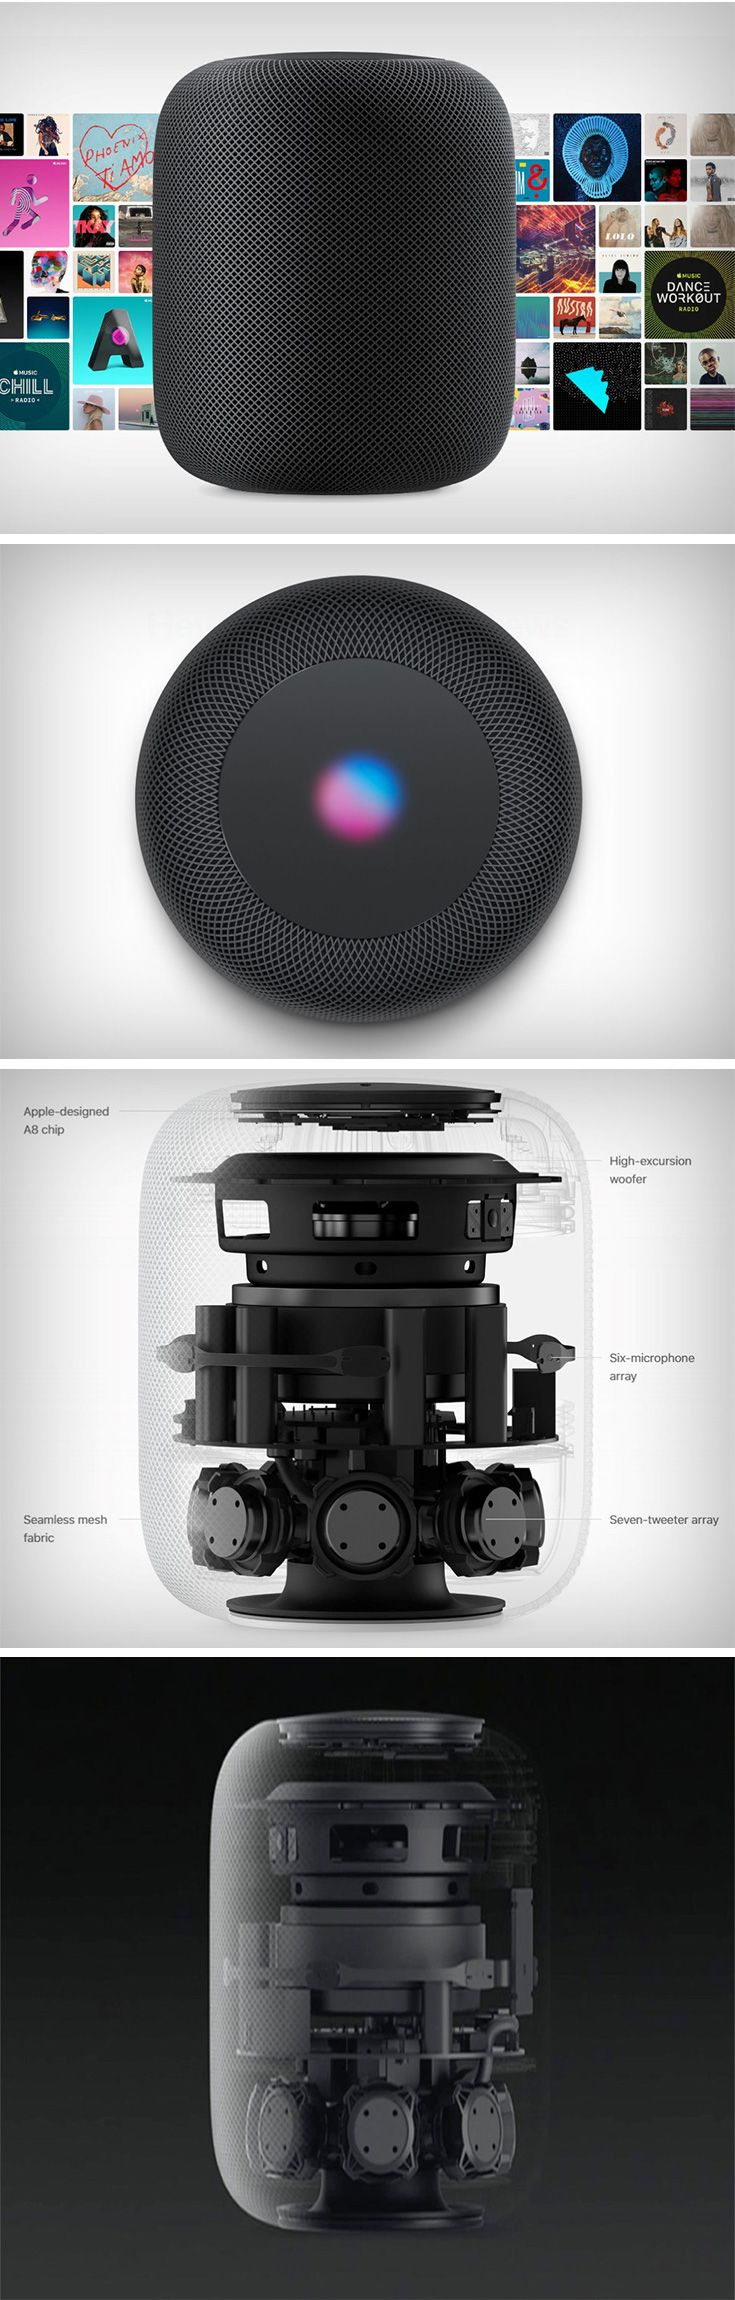 The Homepod is Apple's Siri powered speaker, aimed at rivaling Amazon's Echo, Google's Home, and Harman Kardon's Cortana-powered Invoke speaker. It houses an A8 chip under it that gives it sheer computing power. Why would a speaker need sheer computing power? Because the Homepod is smart. Keep it anywhere in the room and it senses its location, matches it with the music its playing, and automatically equalizes it to make your music sound good no matter where you are.